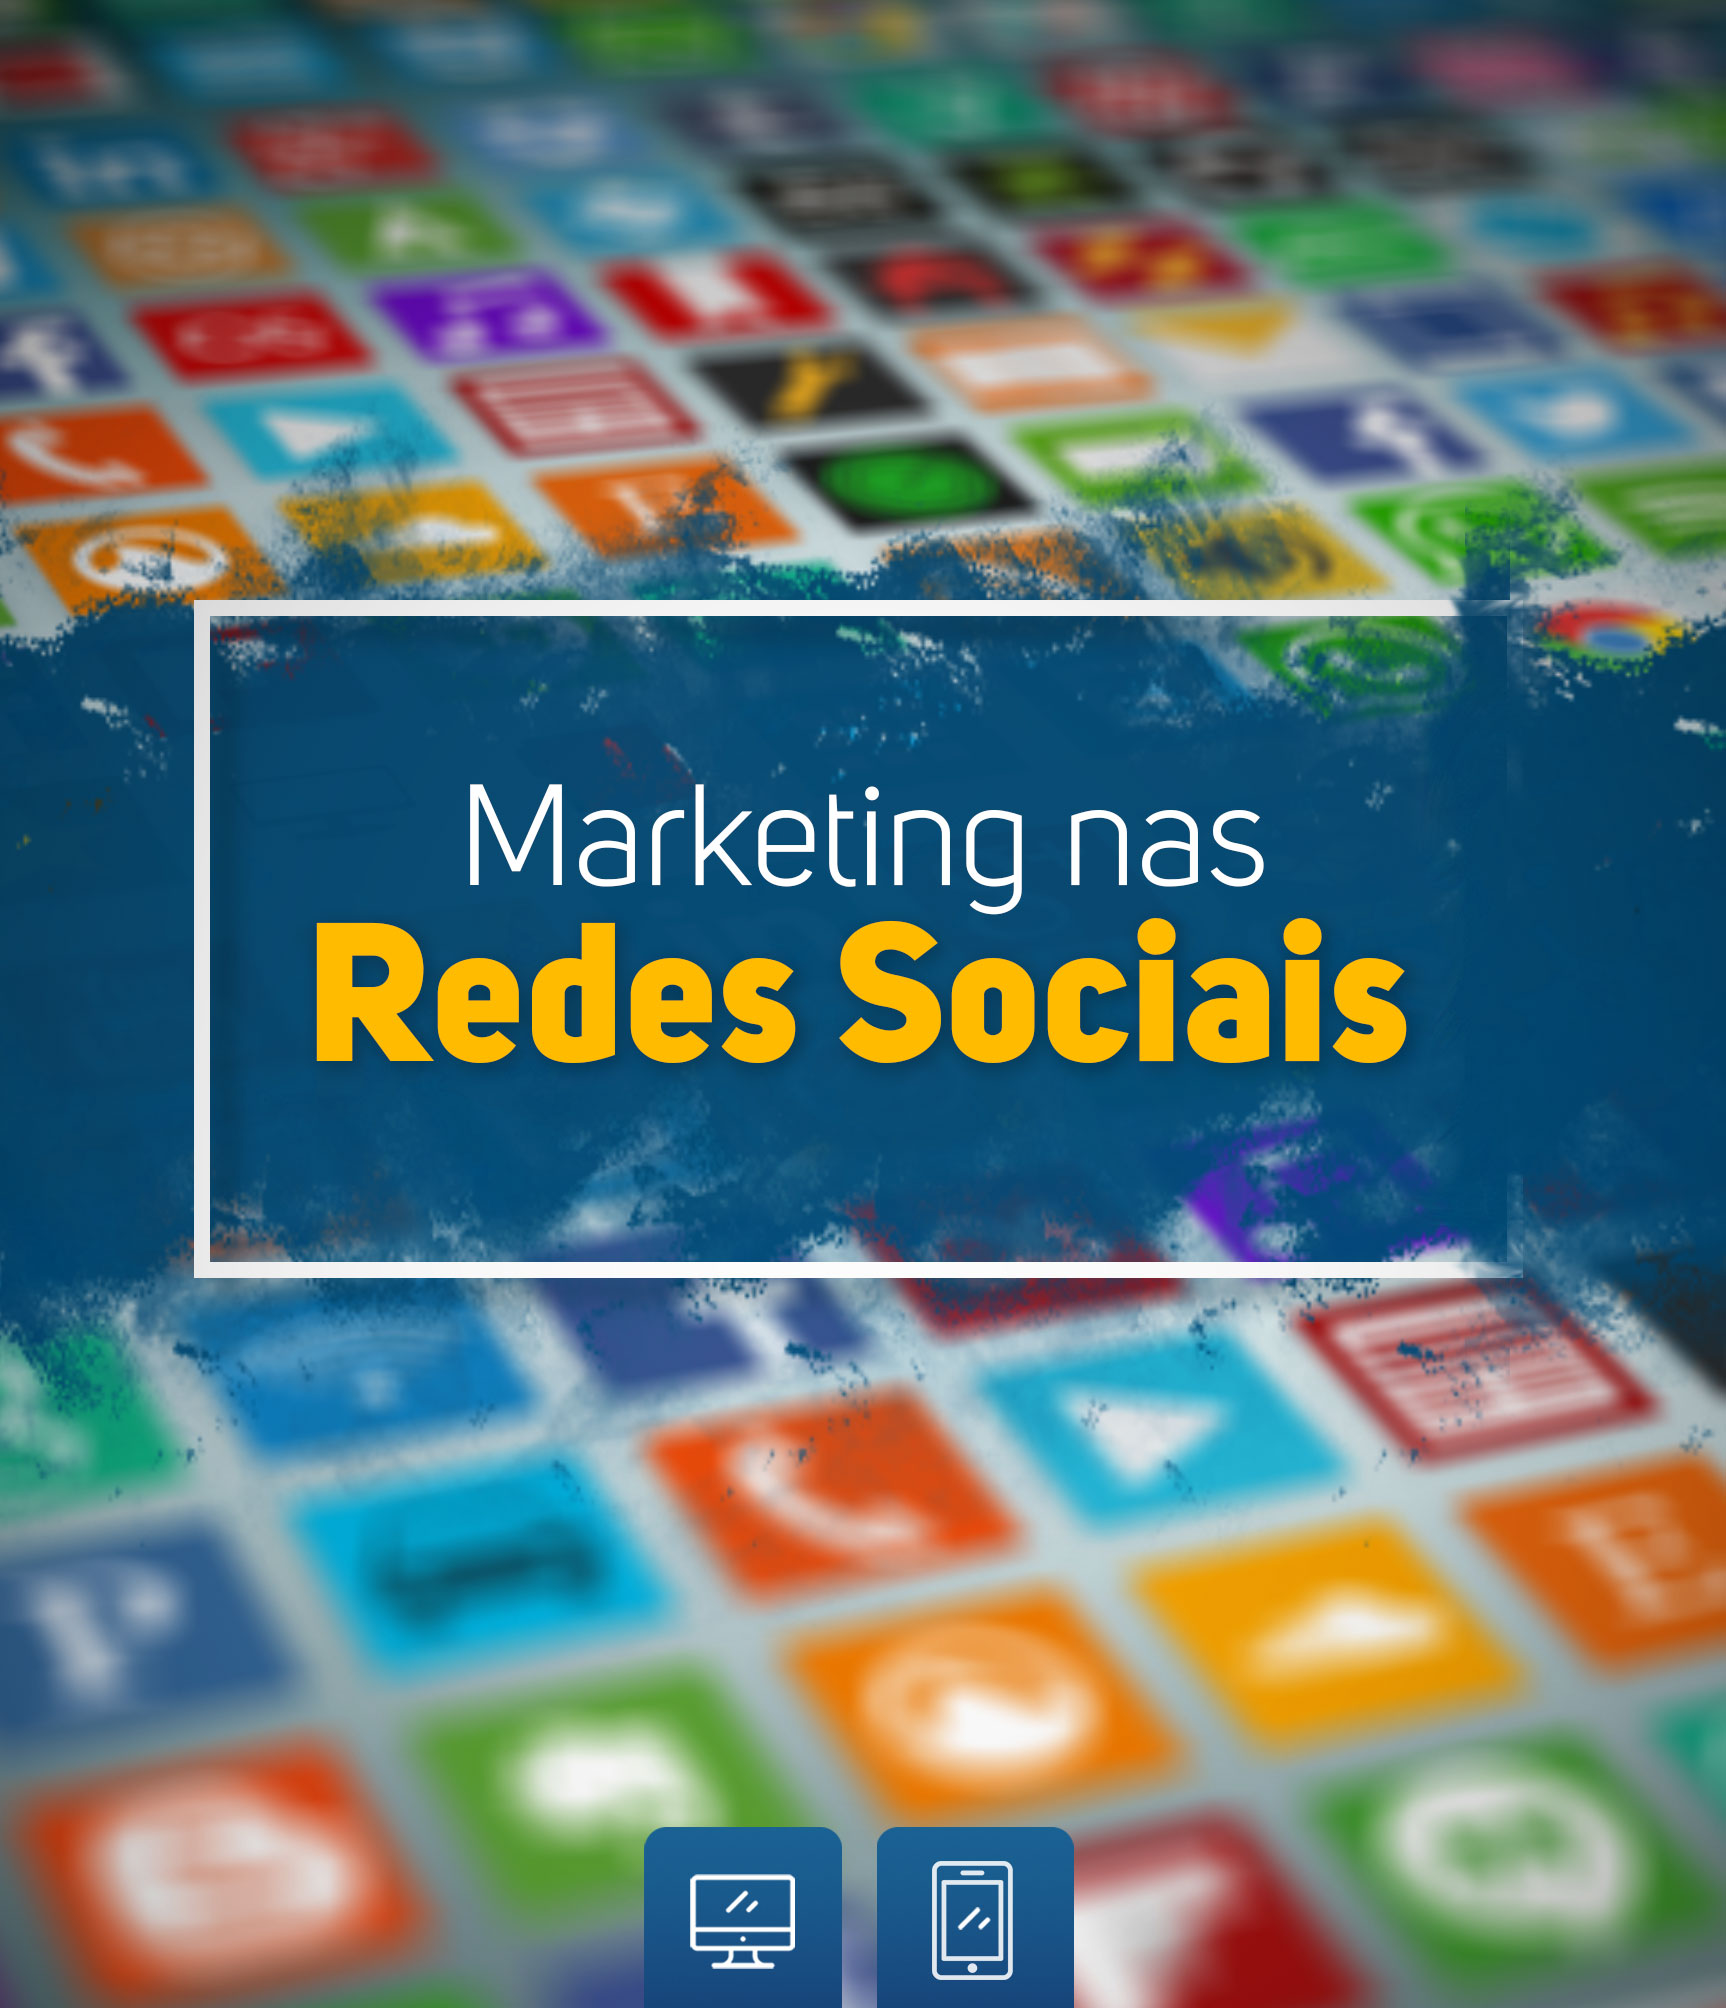 Marketing nas Redes Sociais